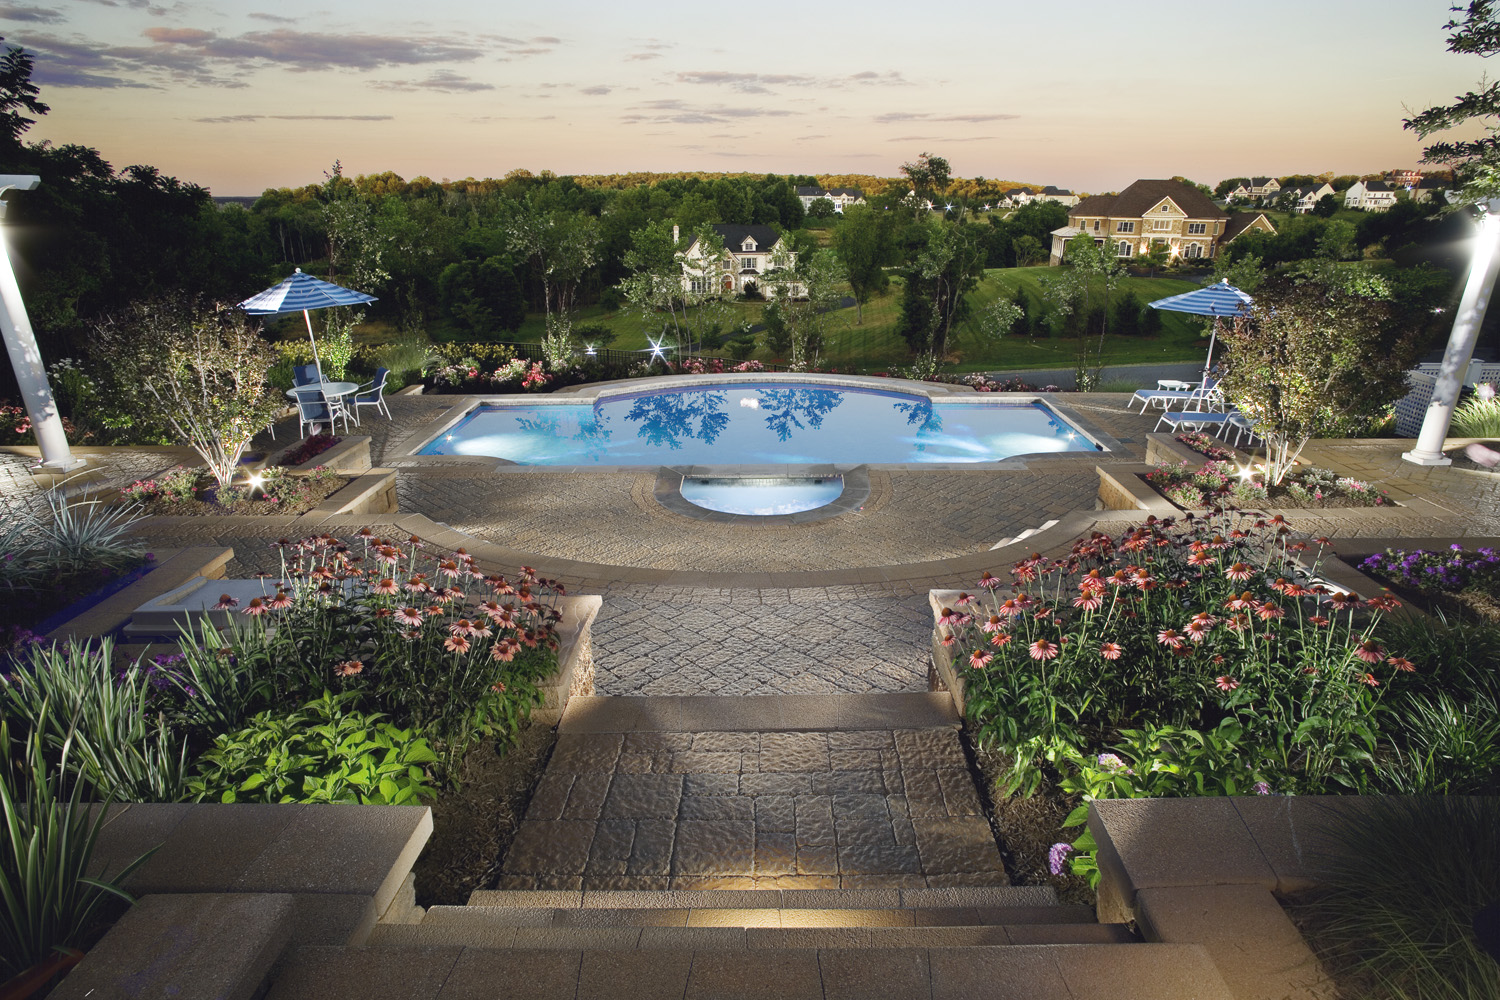 Pool Landscape With Amazing Views In Leesburg Va Land